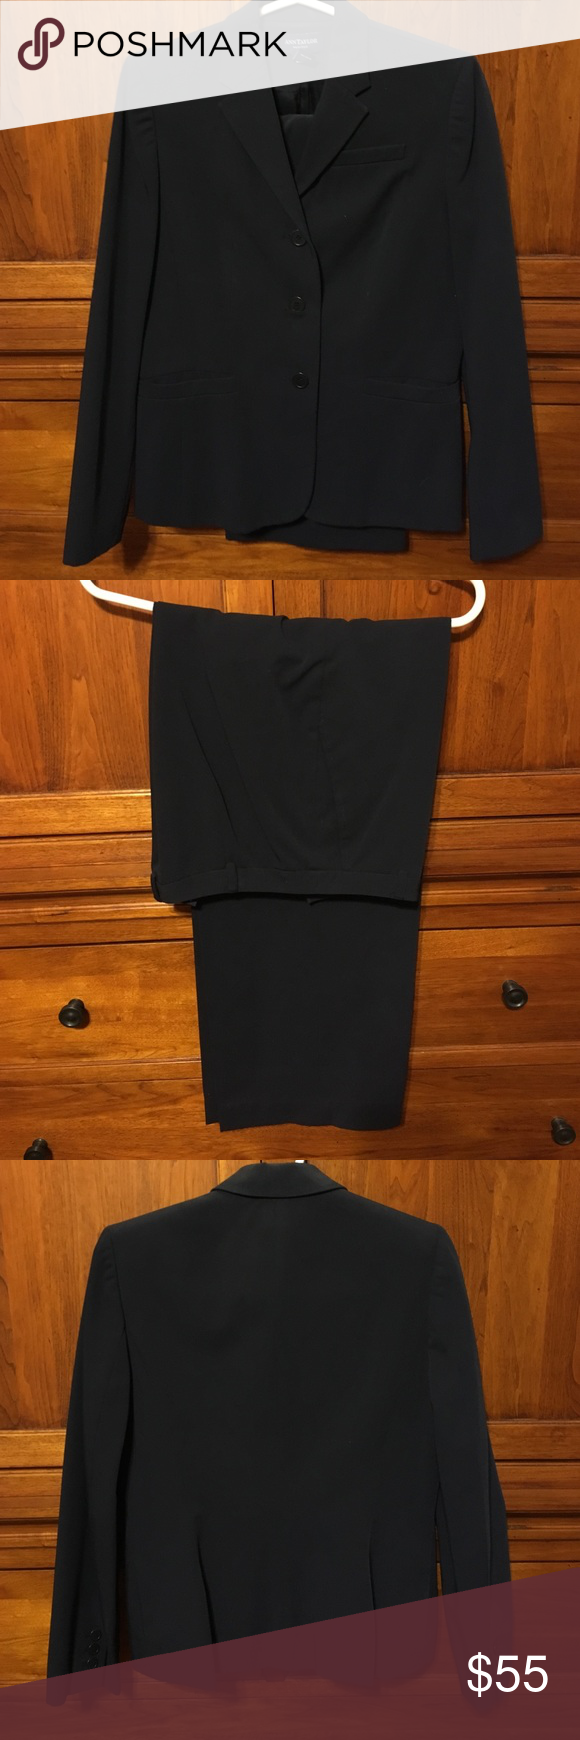 EUC Navy Ann Taylor pantsuit Poly/rayon/spandex blend. Kept bagged and recently dry cleaned. Ann Taylor Pants Trousers